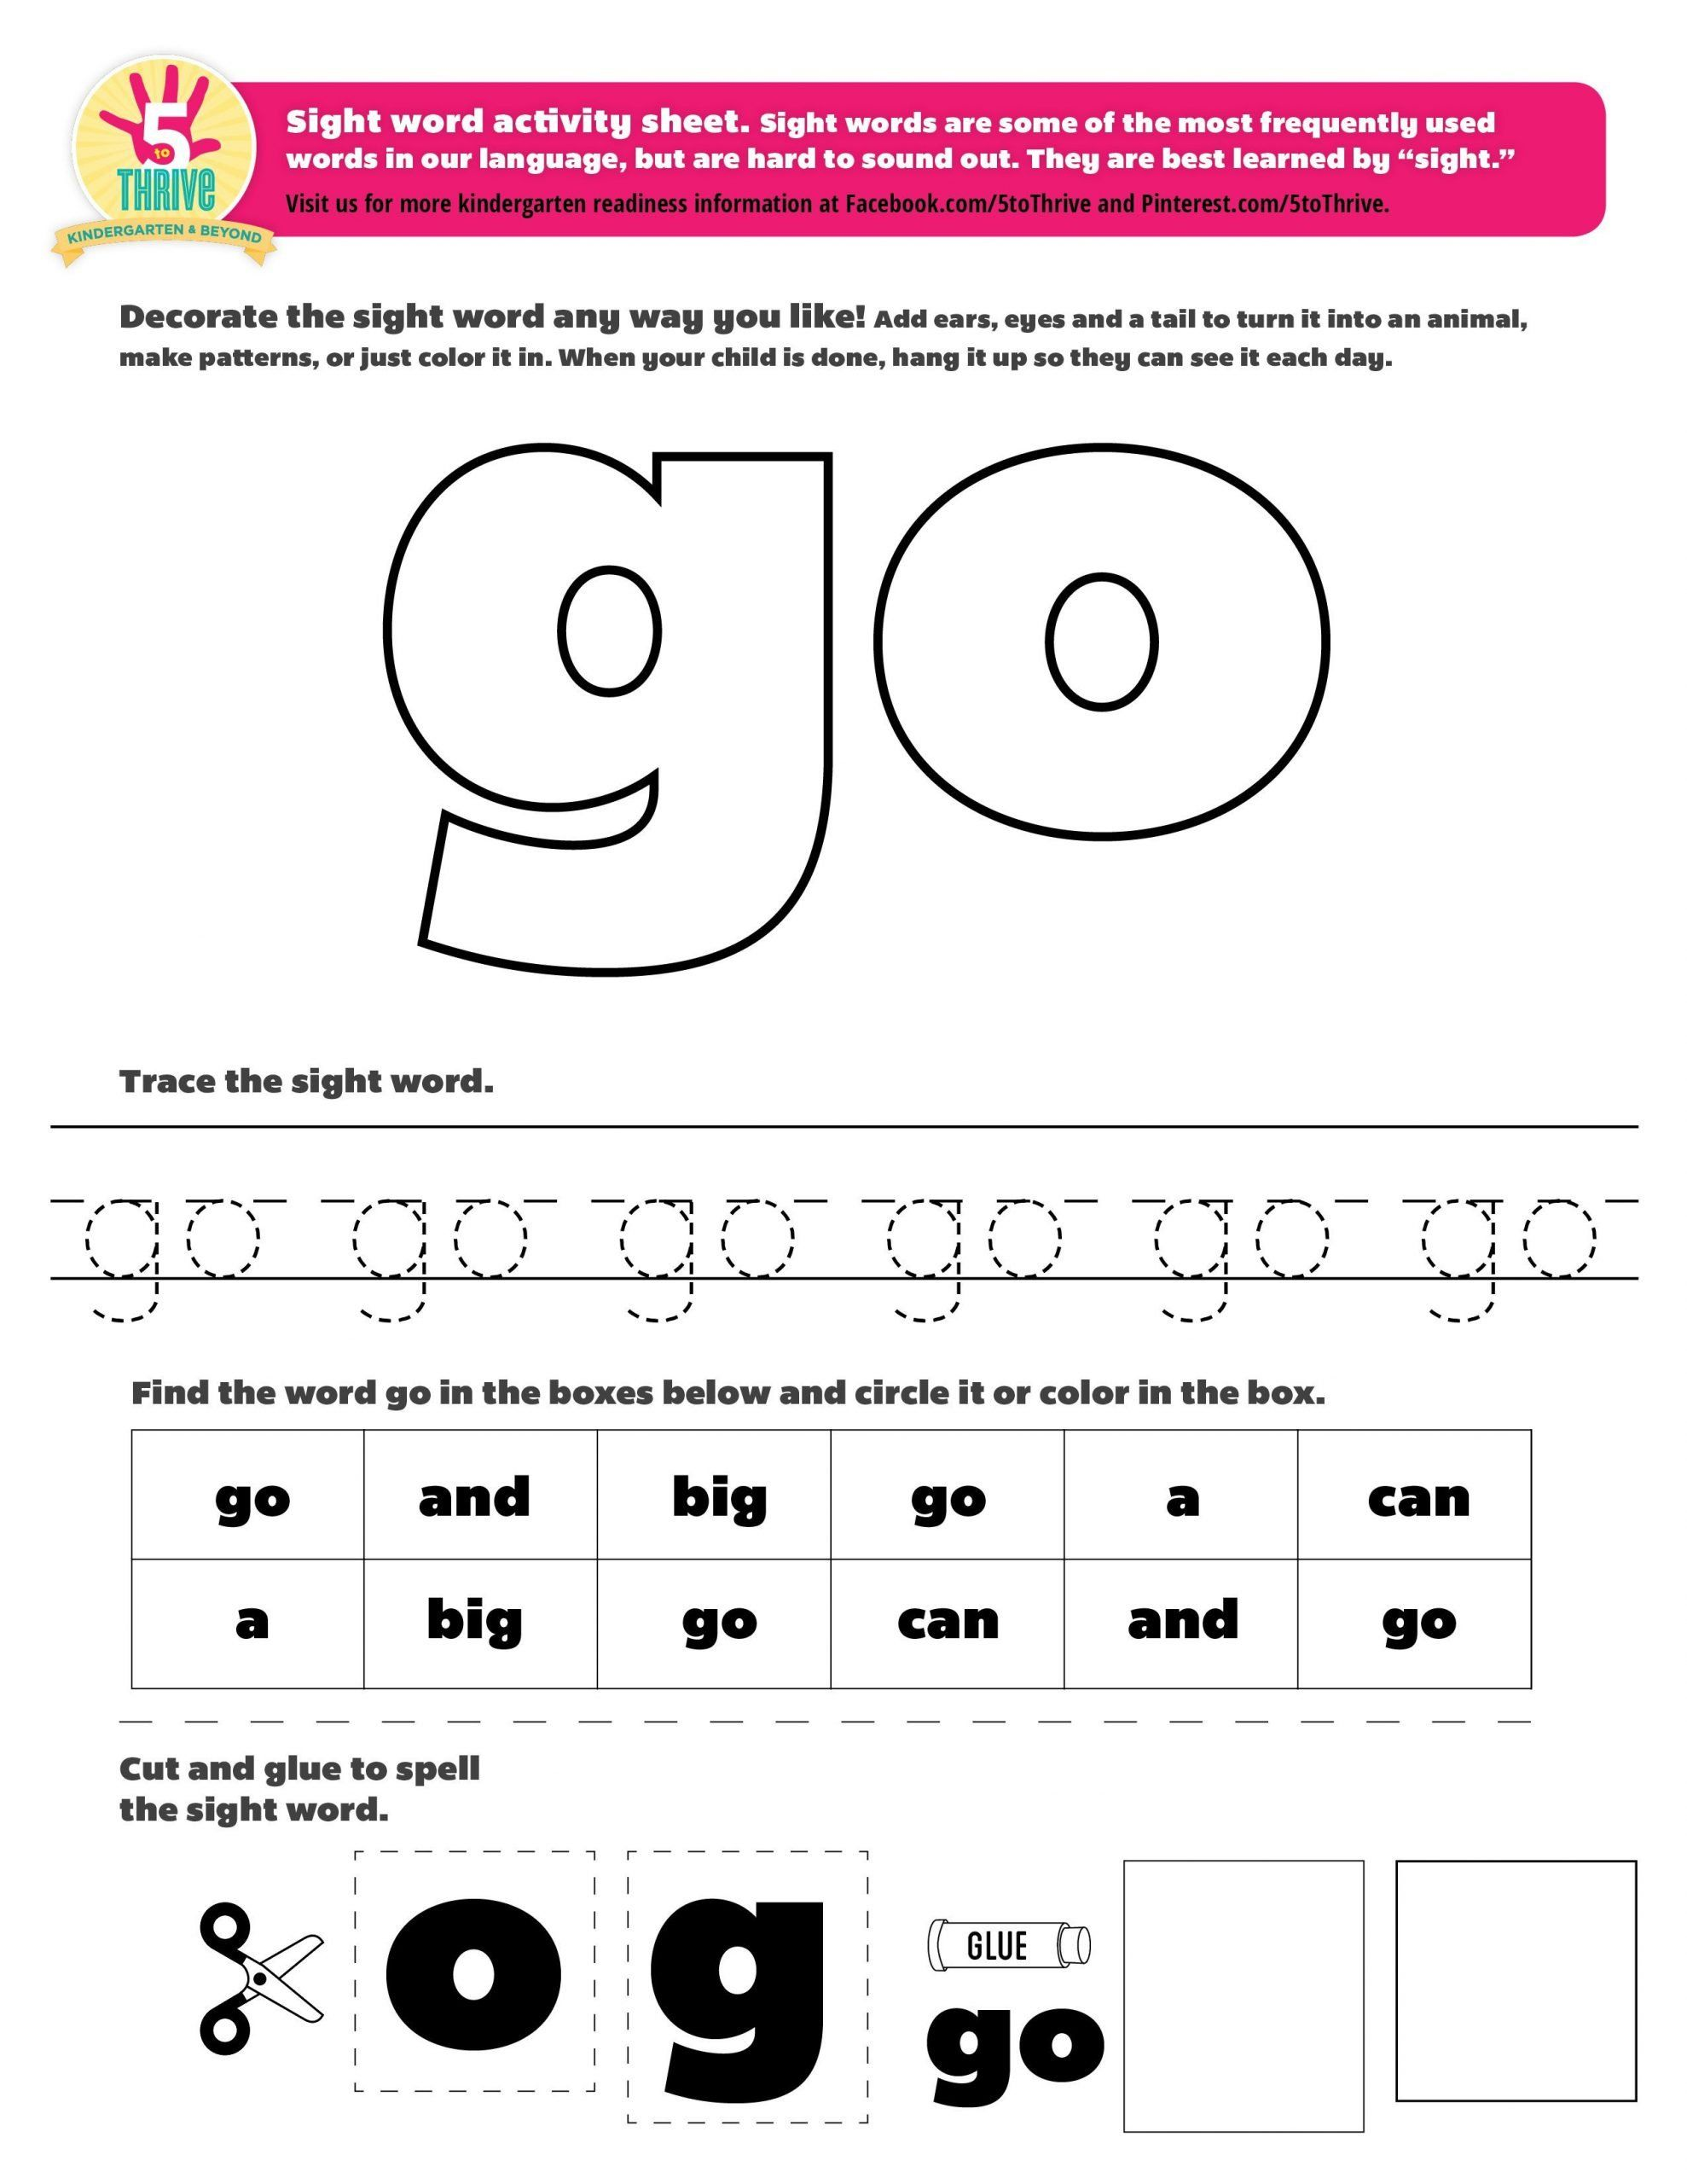 We Sight Word Worksheet The Sight Word This Week Is Go